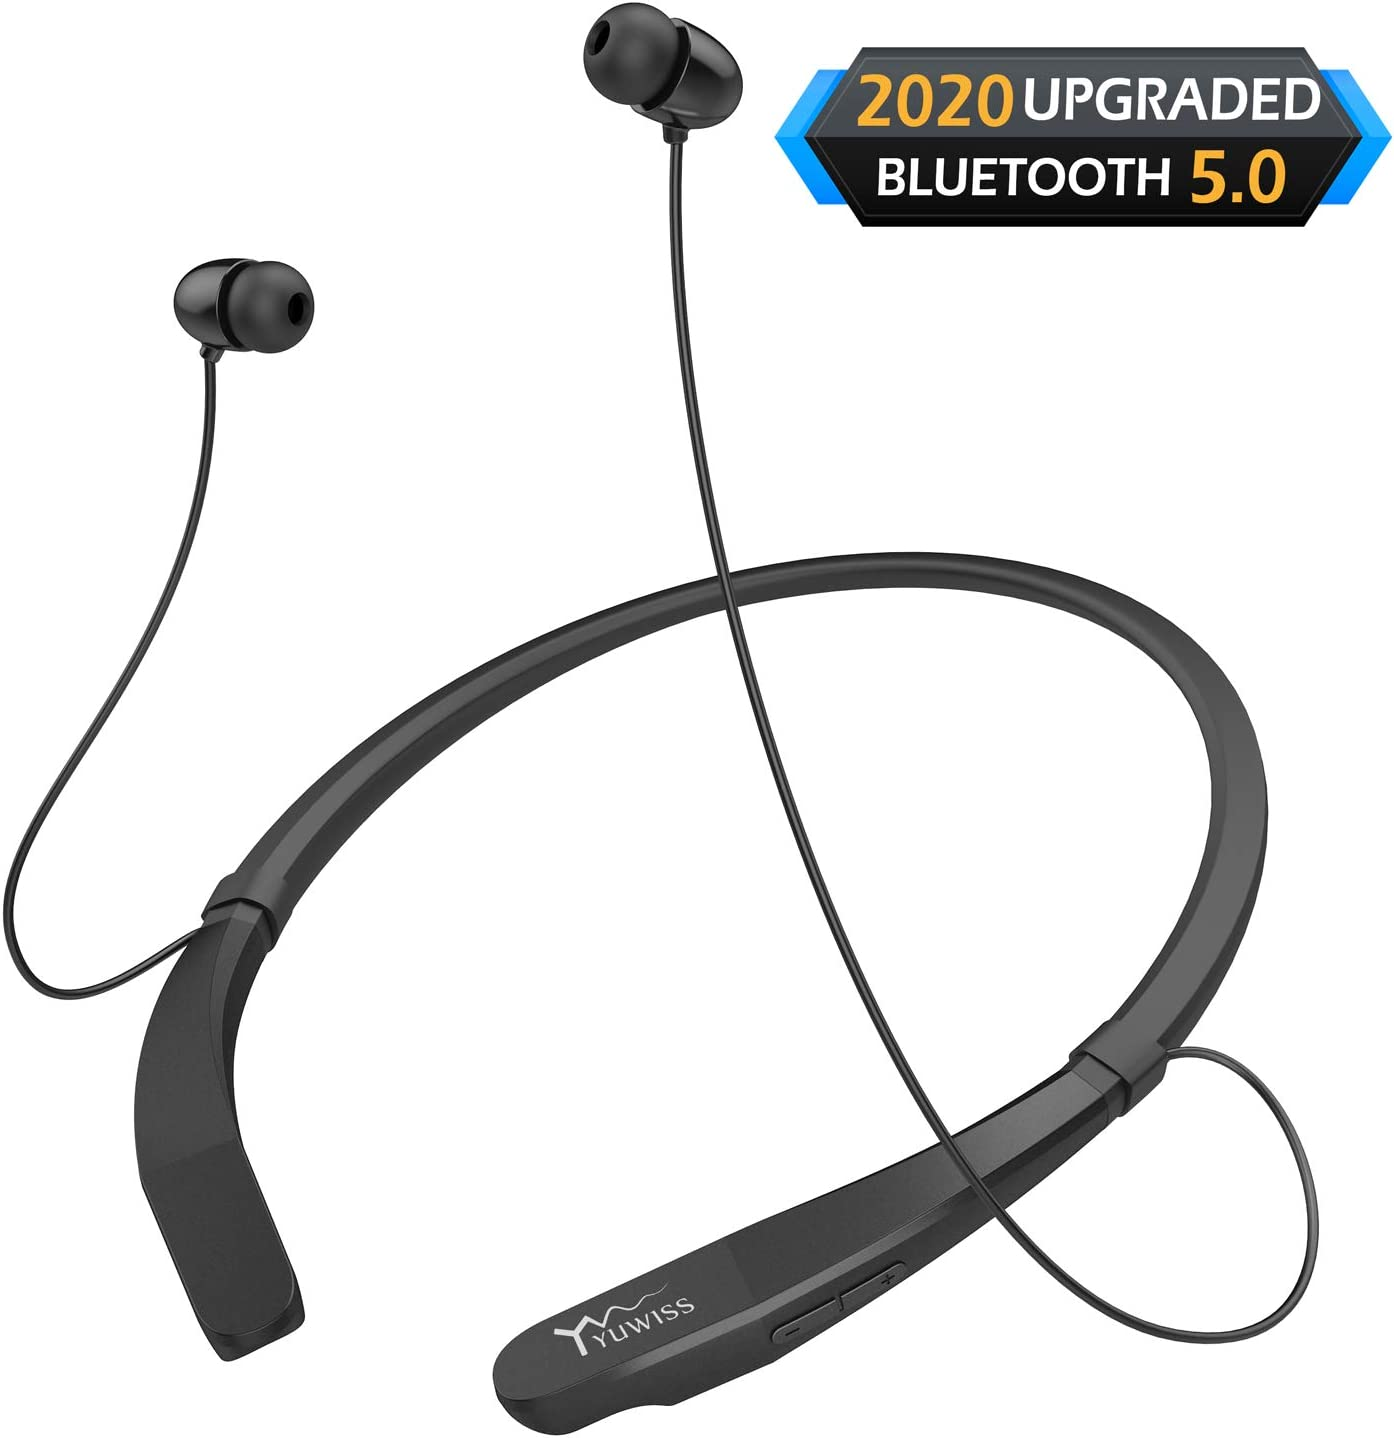 Amazon Com Yuwiss Bluetooth Headphones Neckband V5 0 Lightweight Wireless Headset Call Vibrate Alert Sport Earbuds W Mic Earphones 10 Hour Playtime For Gym Running Compatible With Iphone Samsung Android Black Home Audio Theater